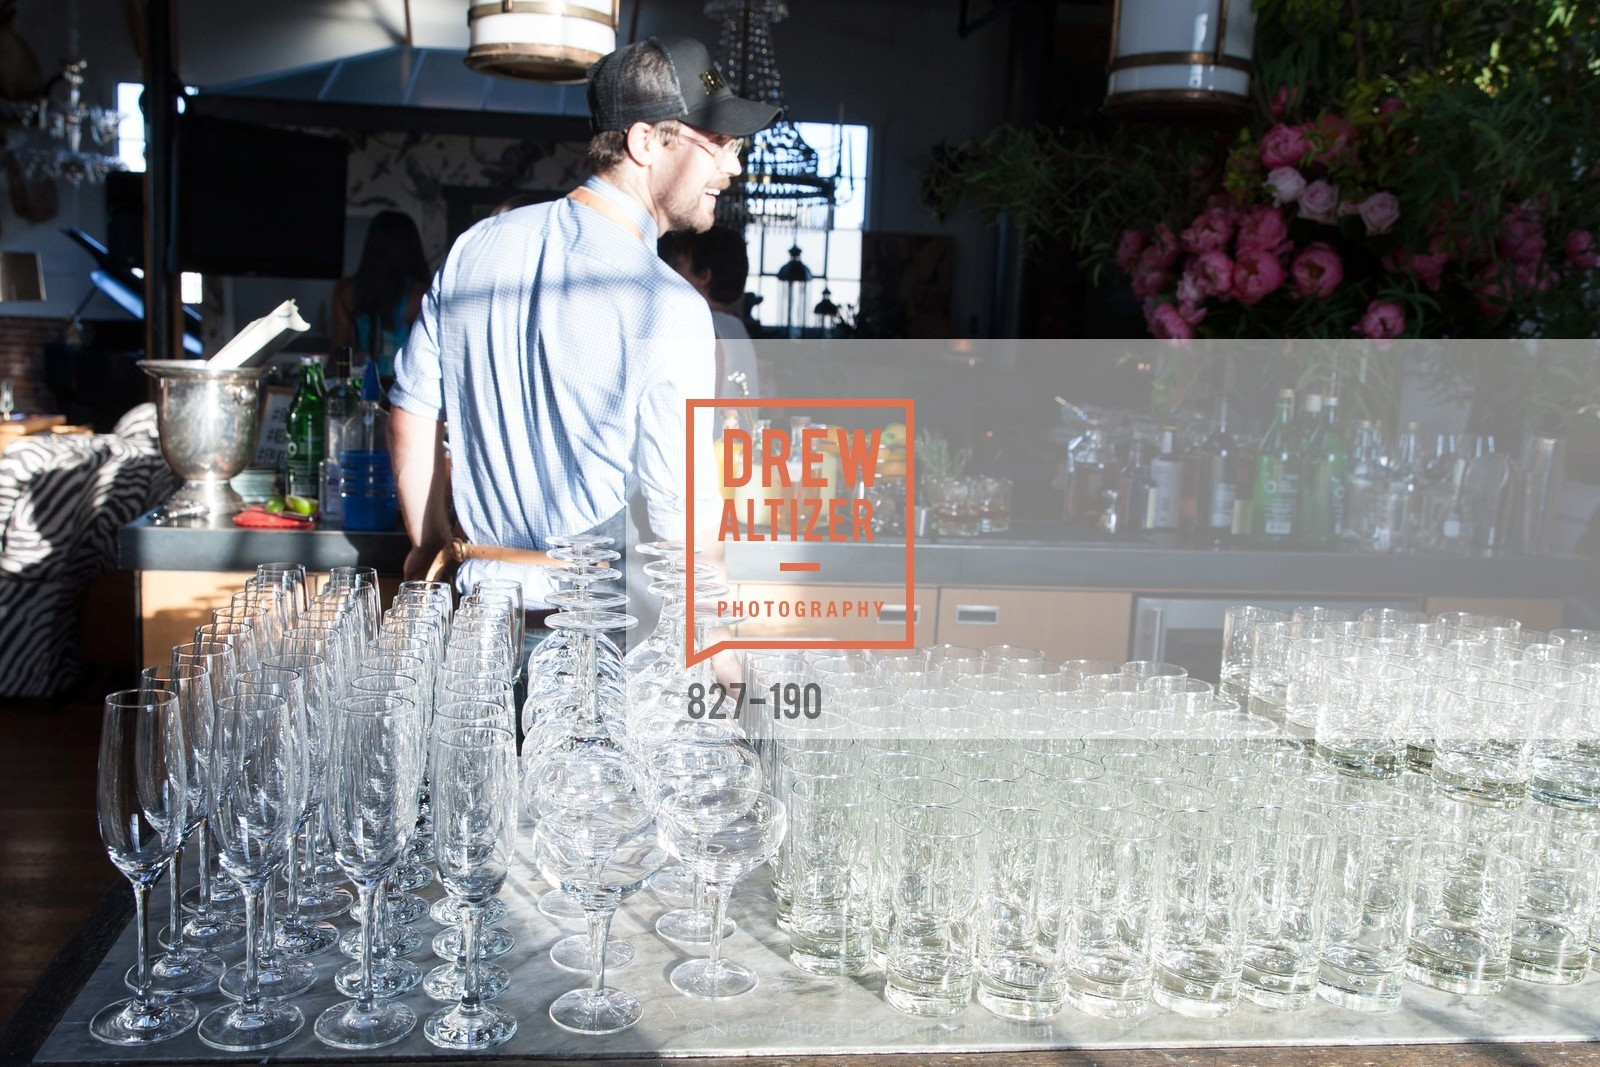 Atmosphere, KEN FULK'S New Furniture Line Unveiling at THE MAGIC FACTORY, The Magic Factory. 310 7th St, June 25th, 2015,Drew Altizer, Drew Altizer Photography, full-service event agency, private events, San Francisco photographer, photographer California